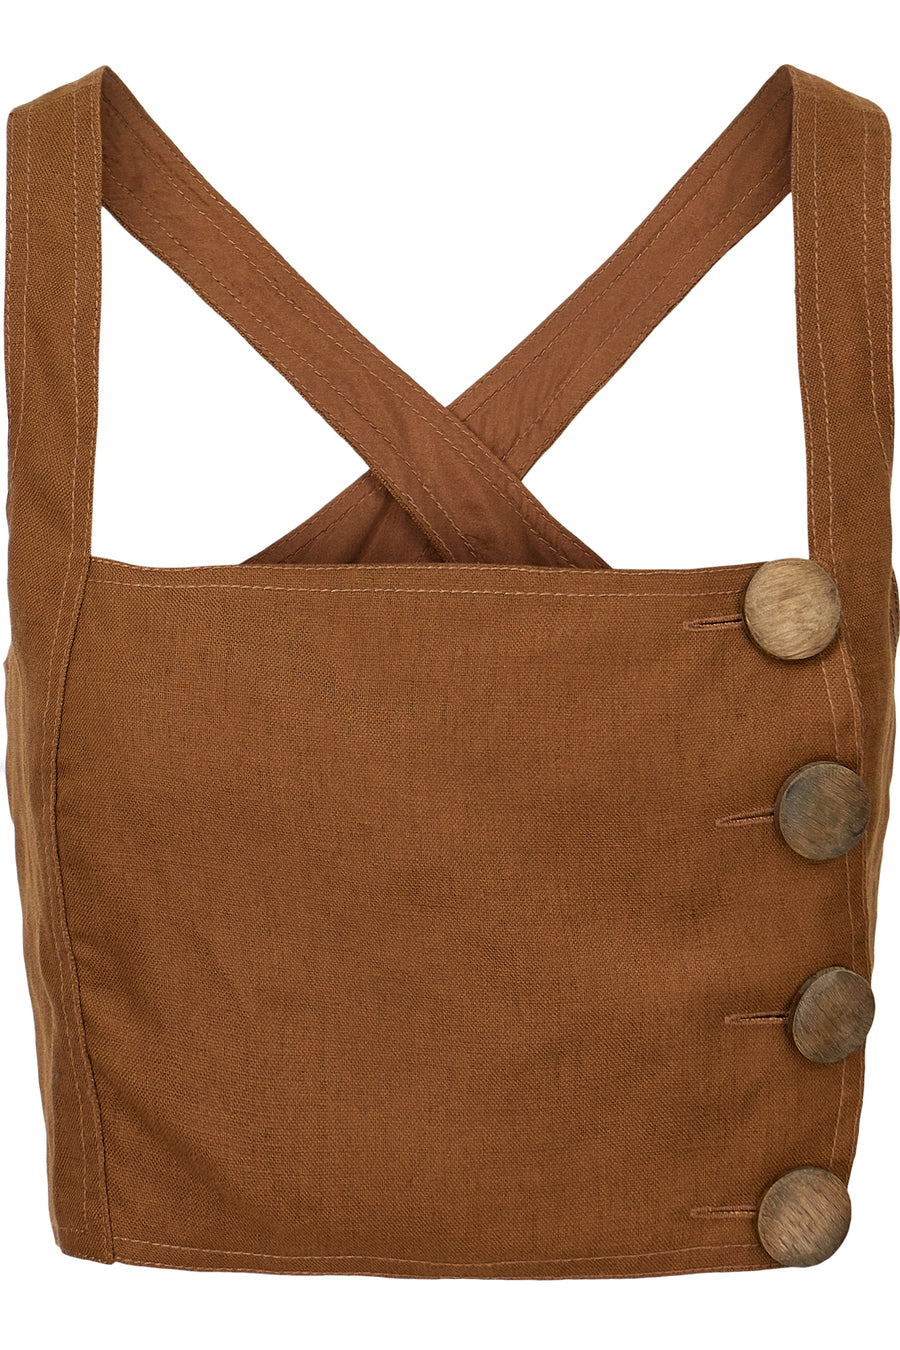 Pinafore Top - Tan